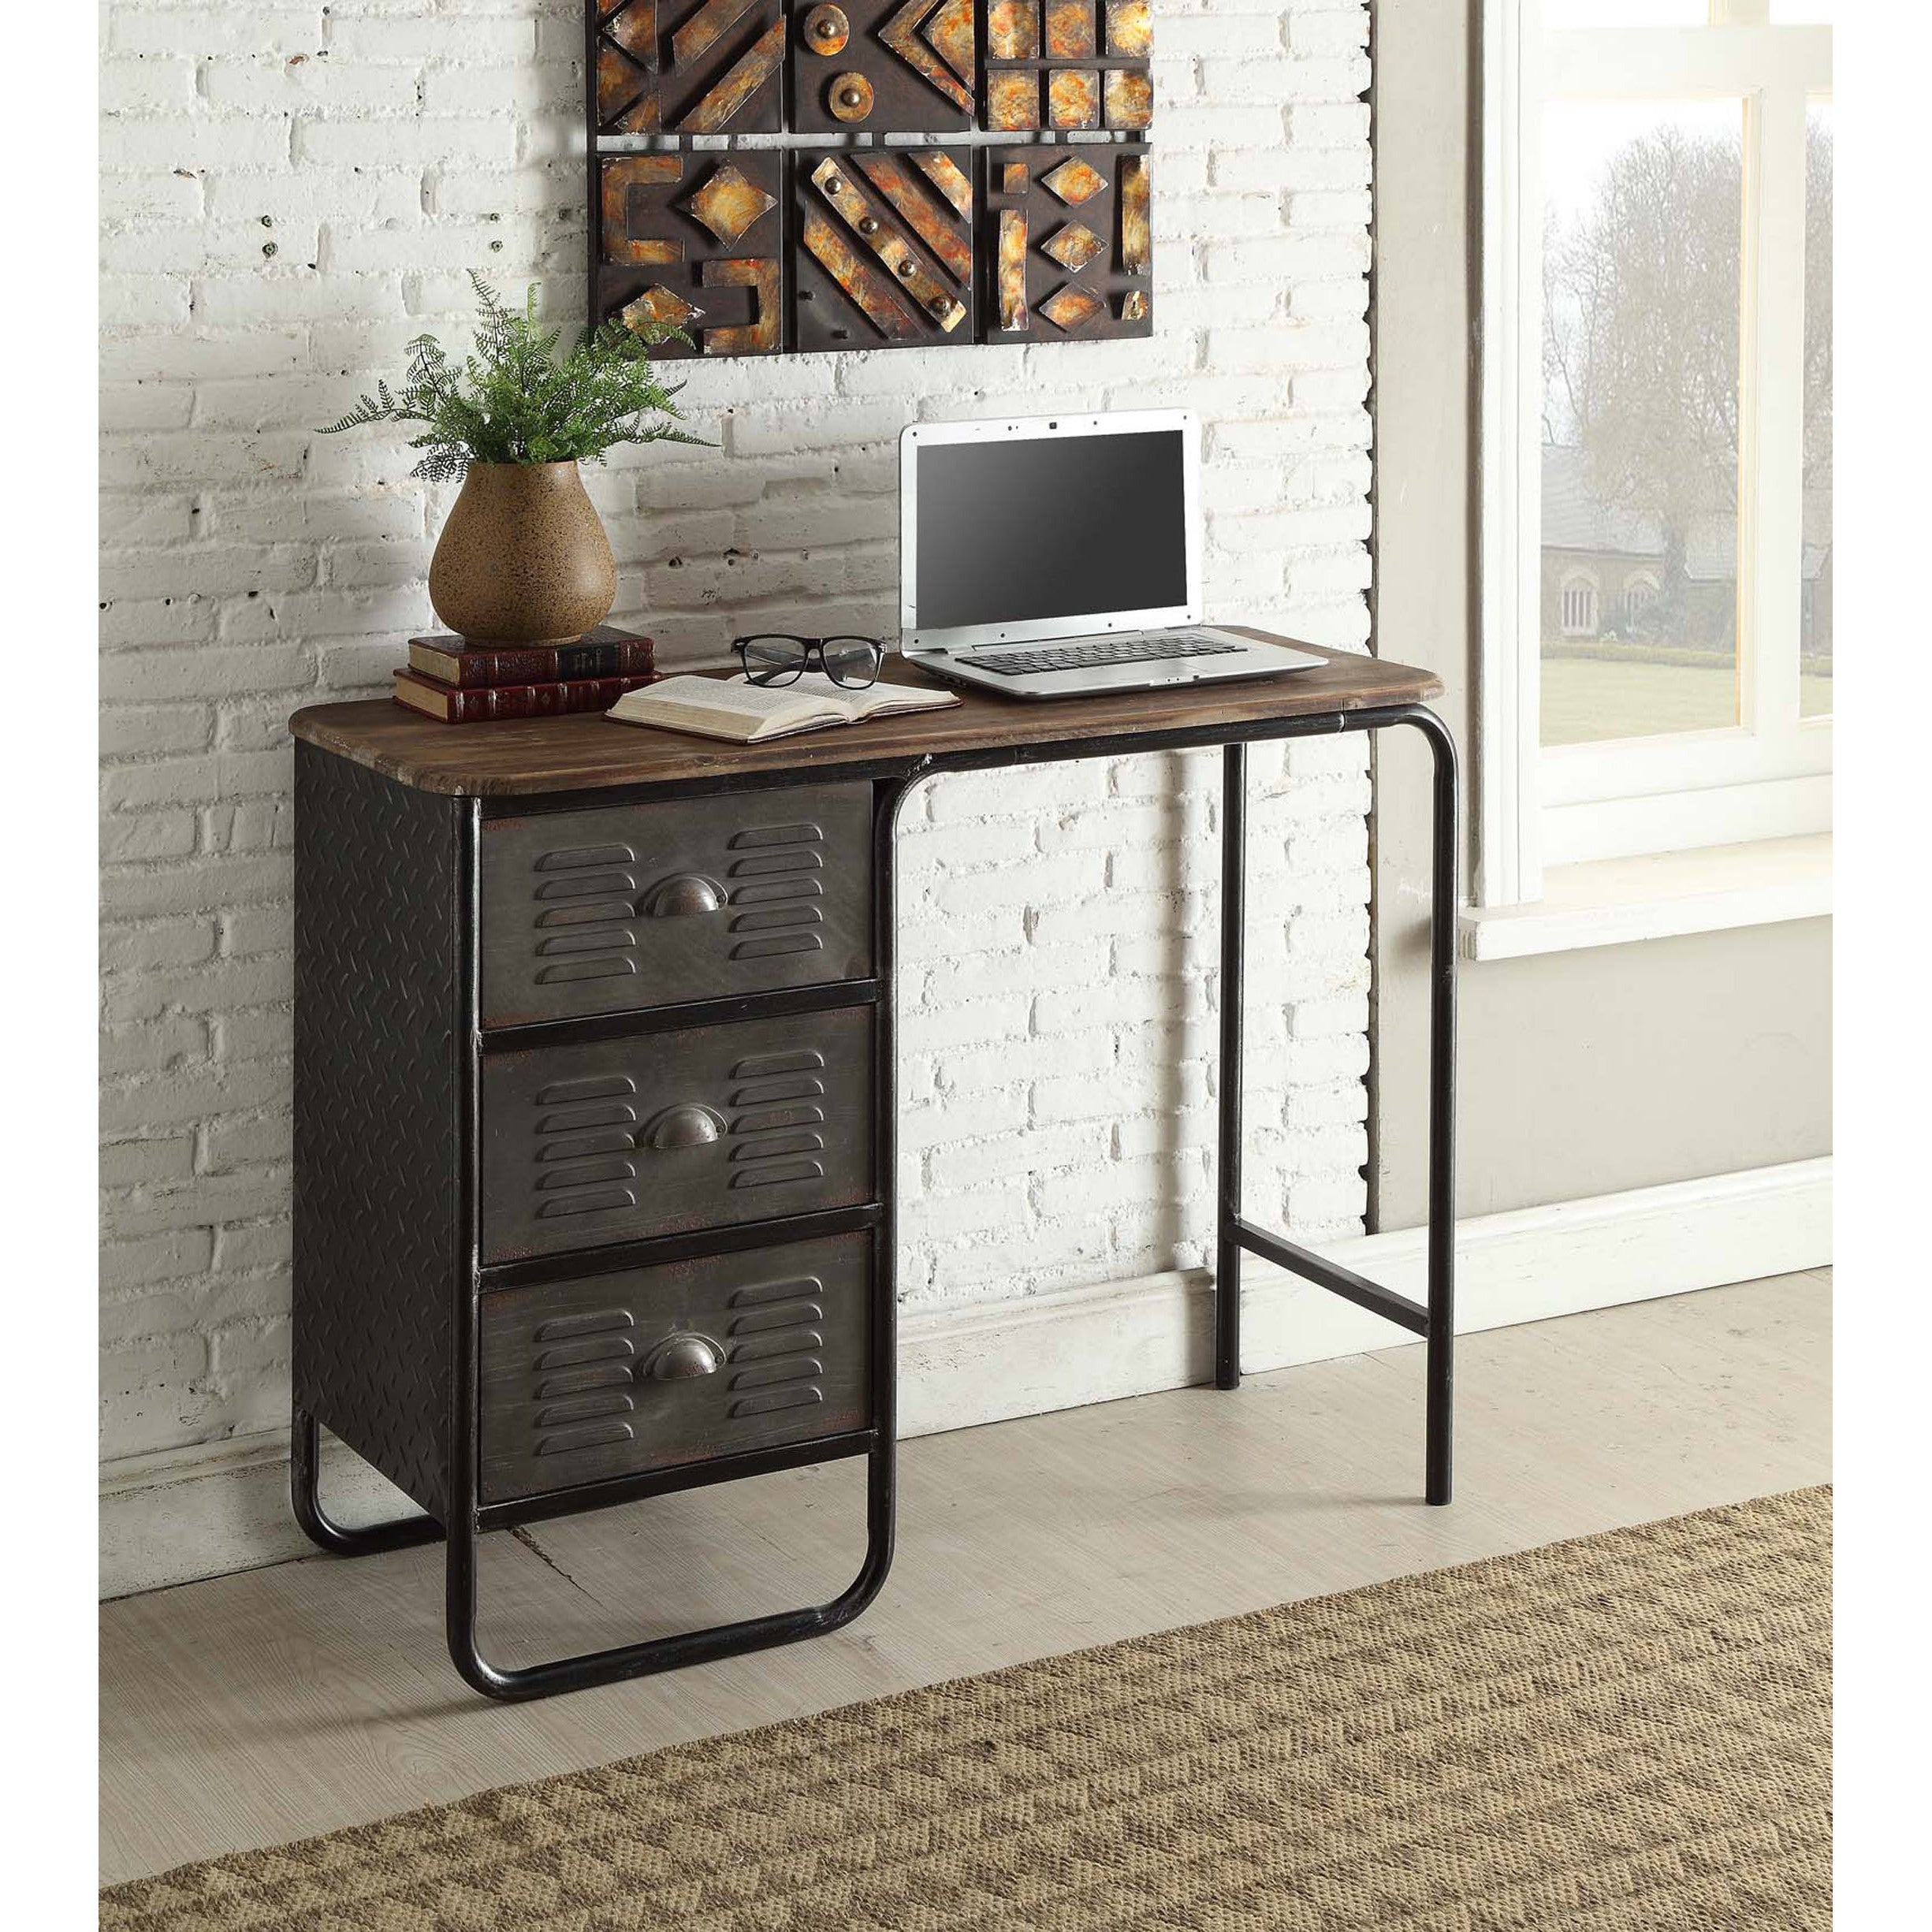 desk office the from style industrial range new furniture table